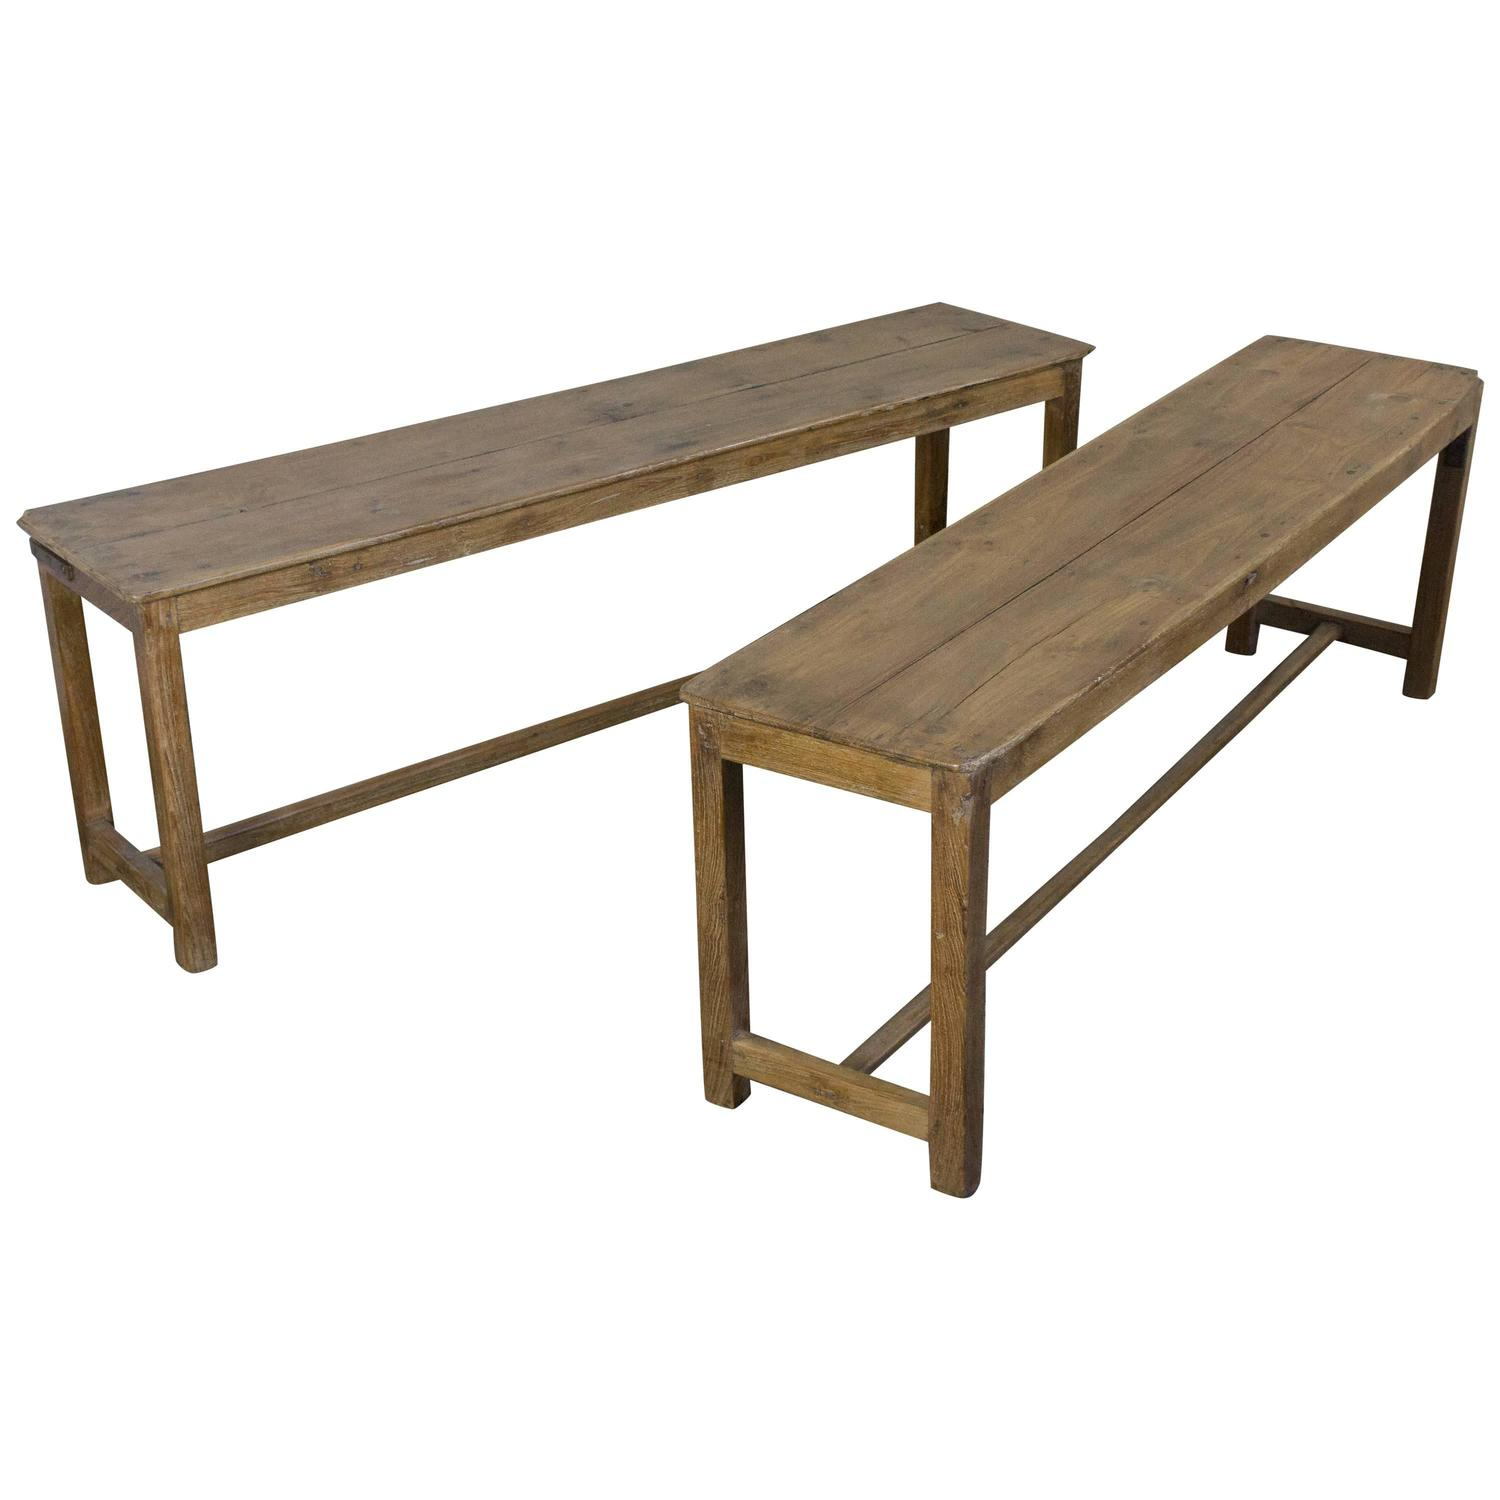 Pair Of Wooden Industrial Benches At 1stdibs